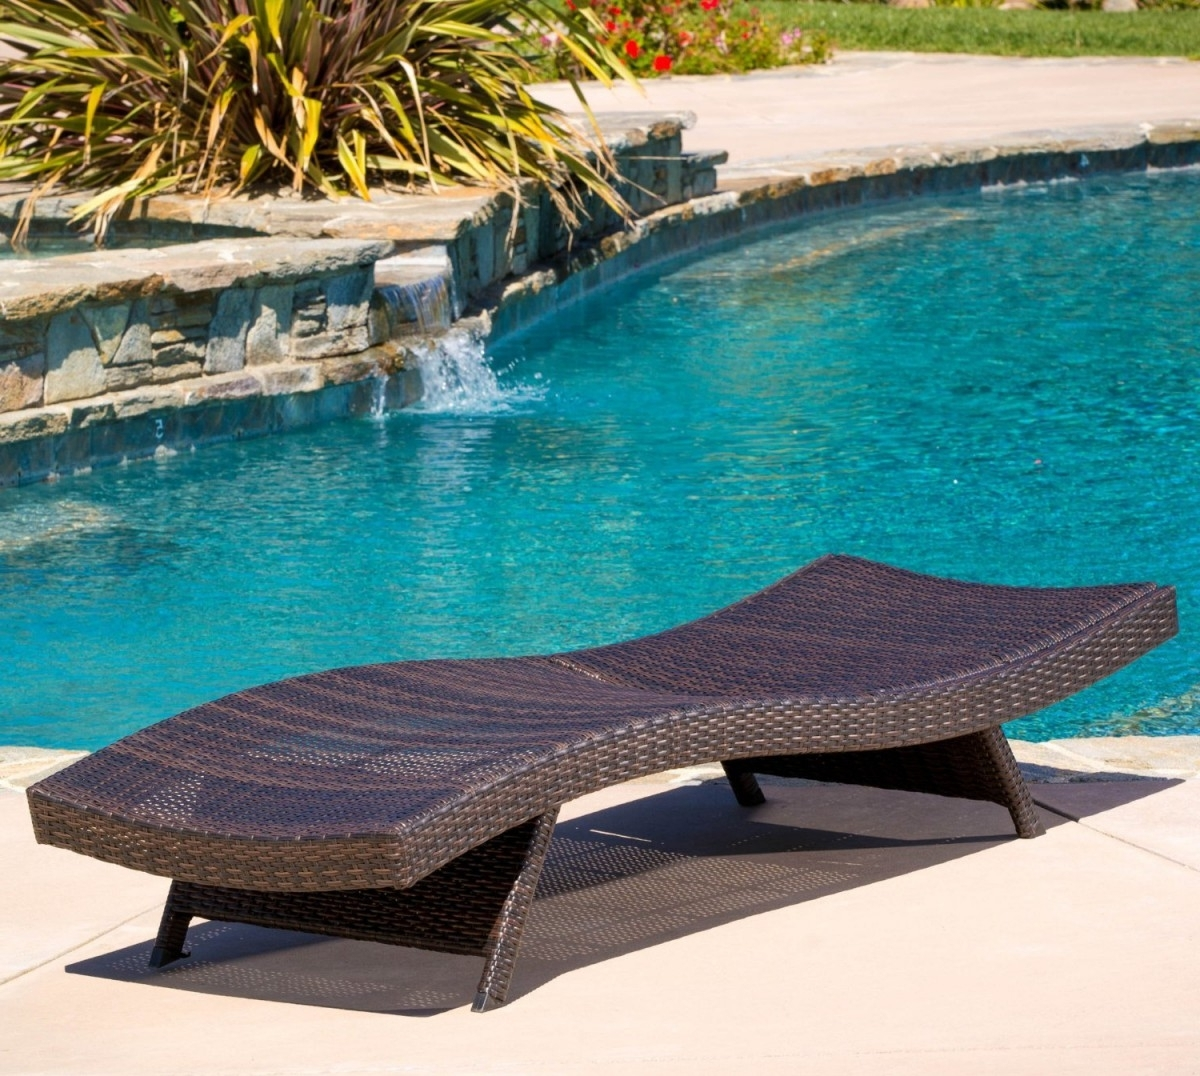 Folding Wicker Outdoor Chaise Lounge Chair In Fashionable Keter Chaise Lounges (View 4 of 15)